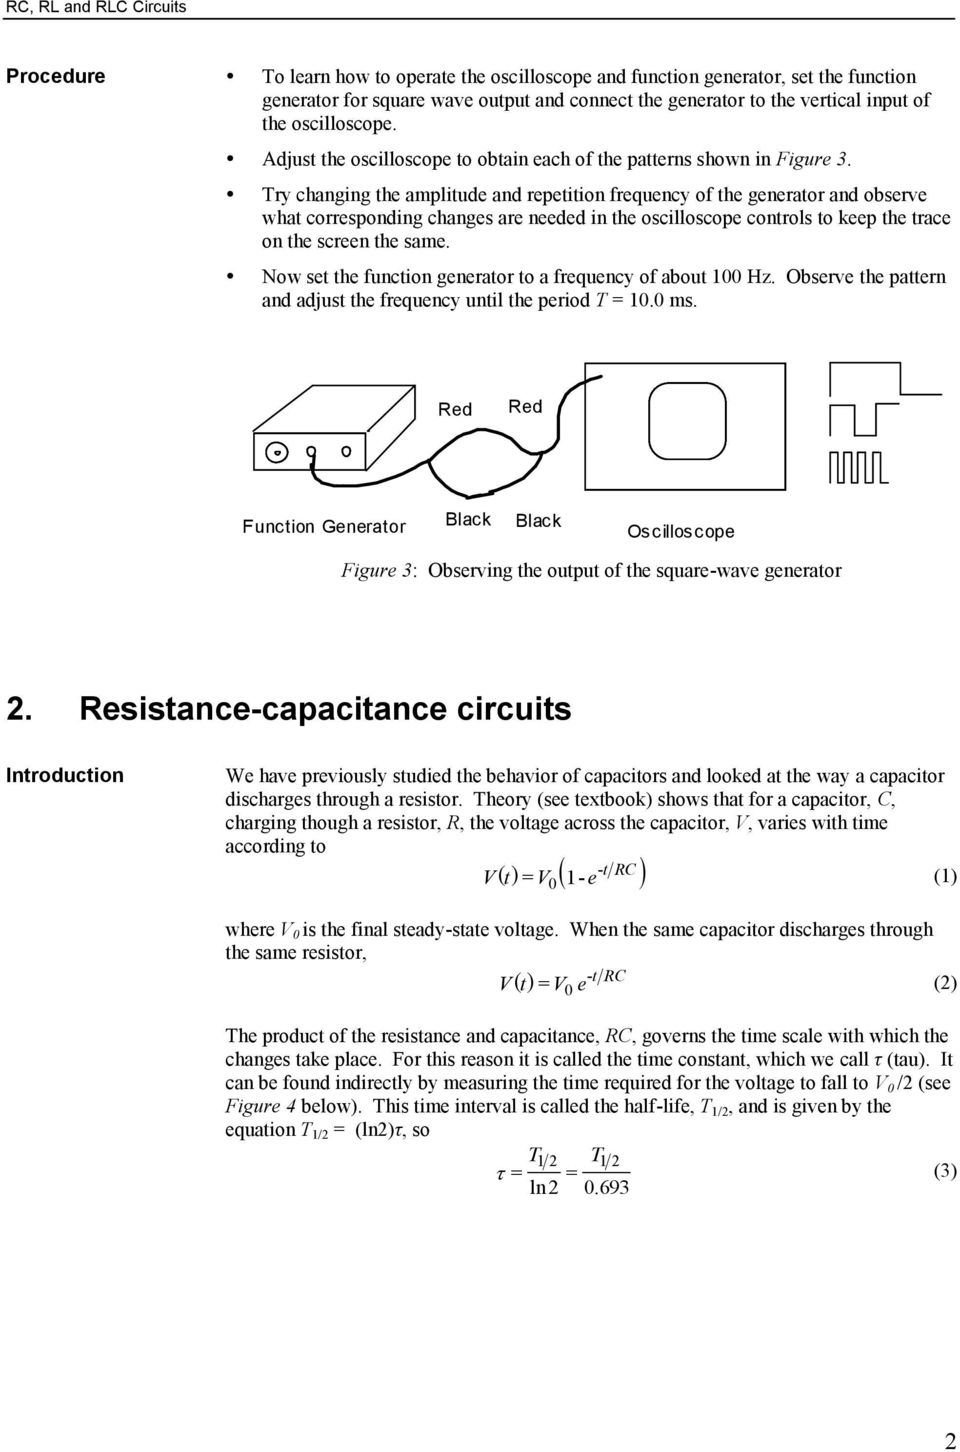 Rc Rl And Rlc Circuits Pdf Figure 3 Parallel Circuit Try Changing He Ampliude Repeiion Frequency Of Generaor Observe Wha Corresponding Changes Are